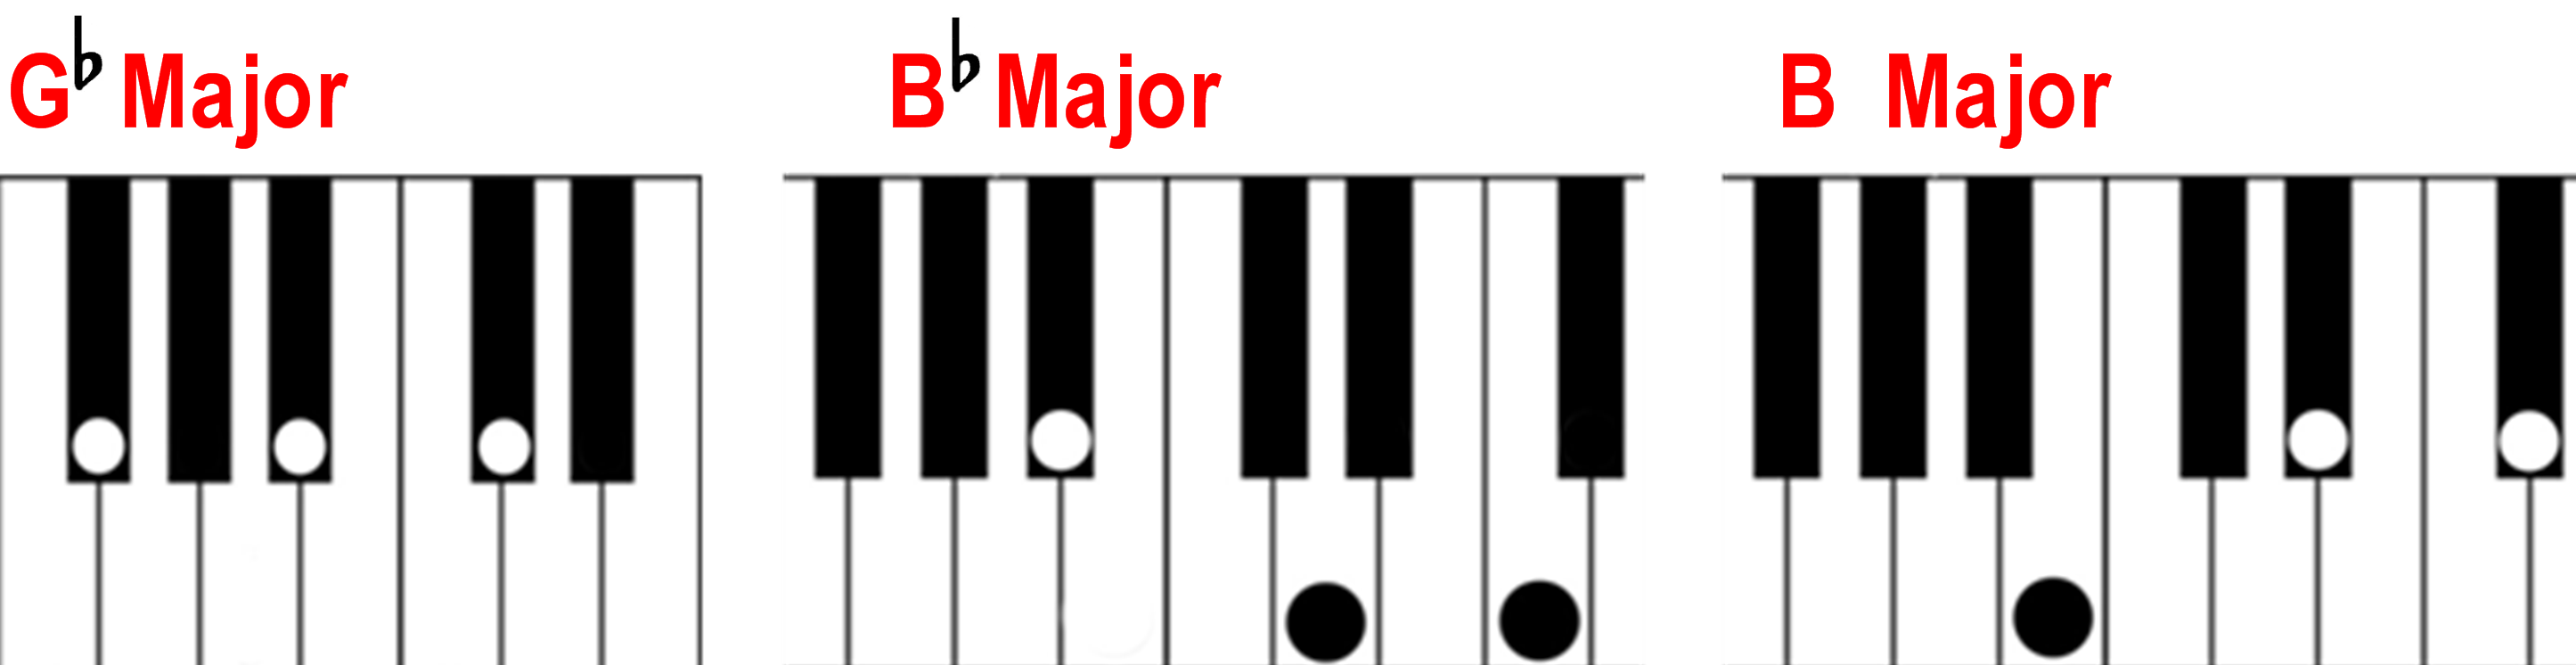 Finding a major chord. Piano clipart harmony music